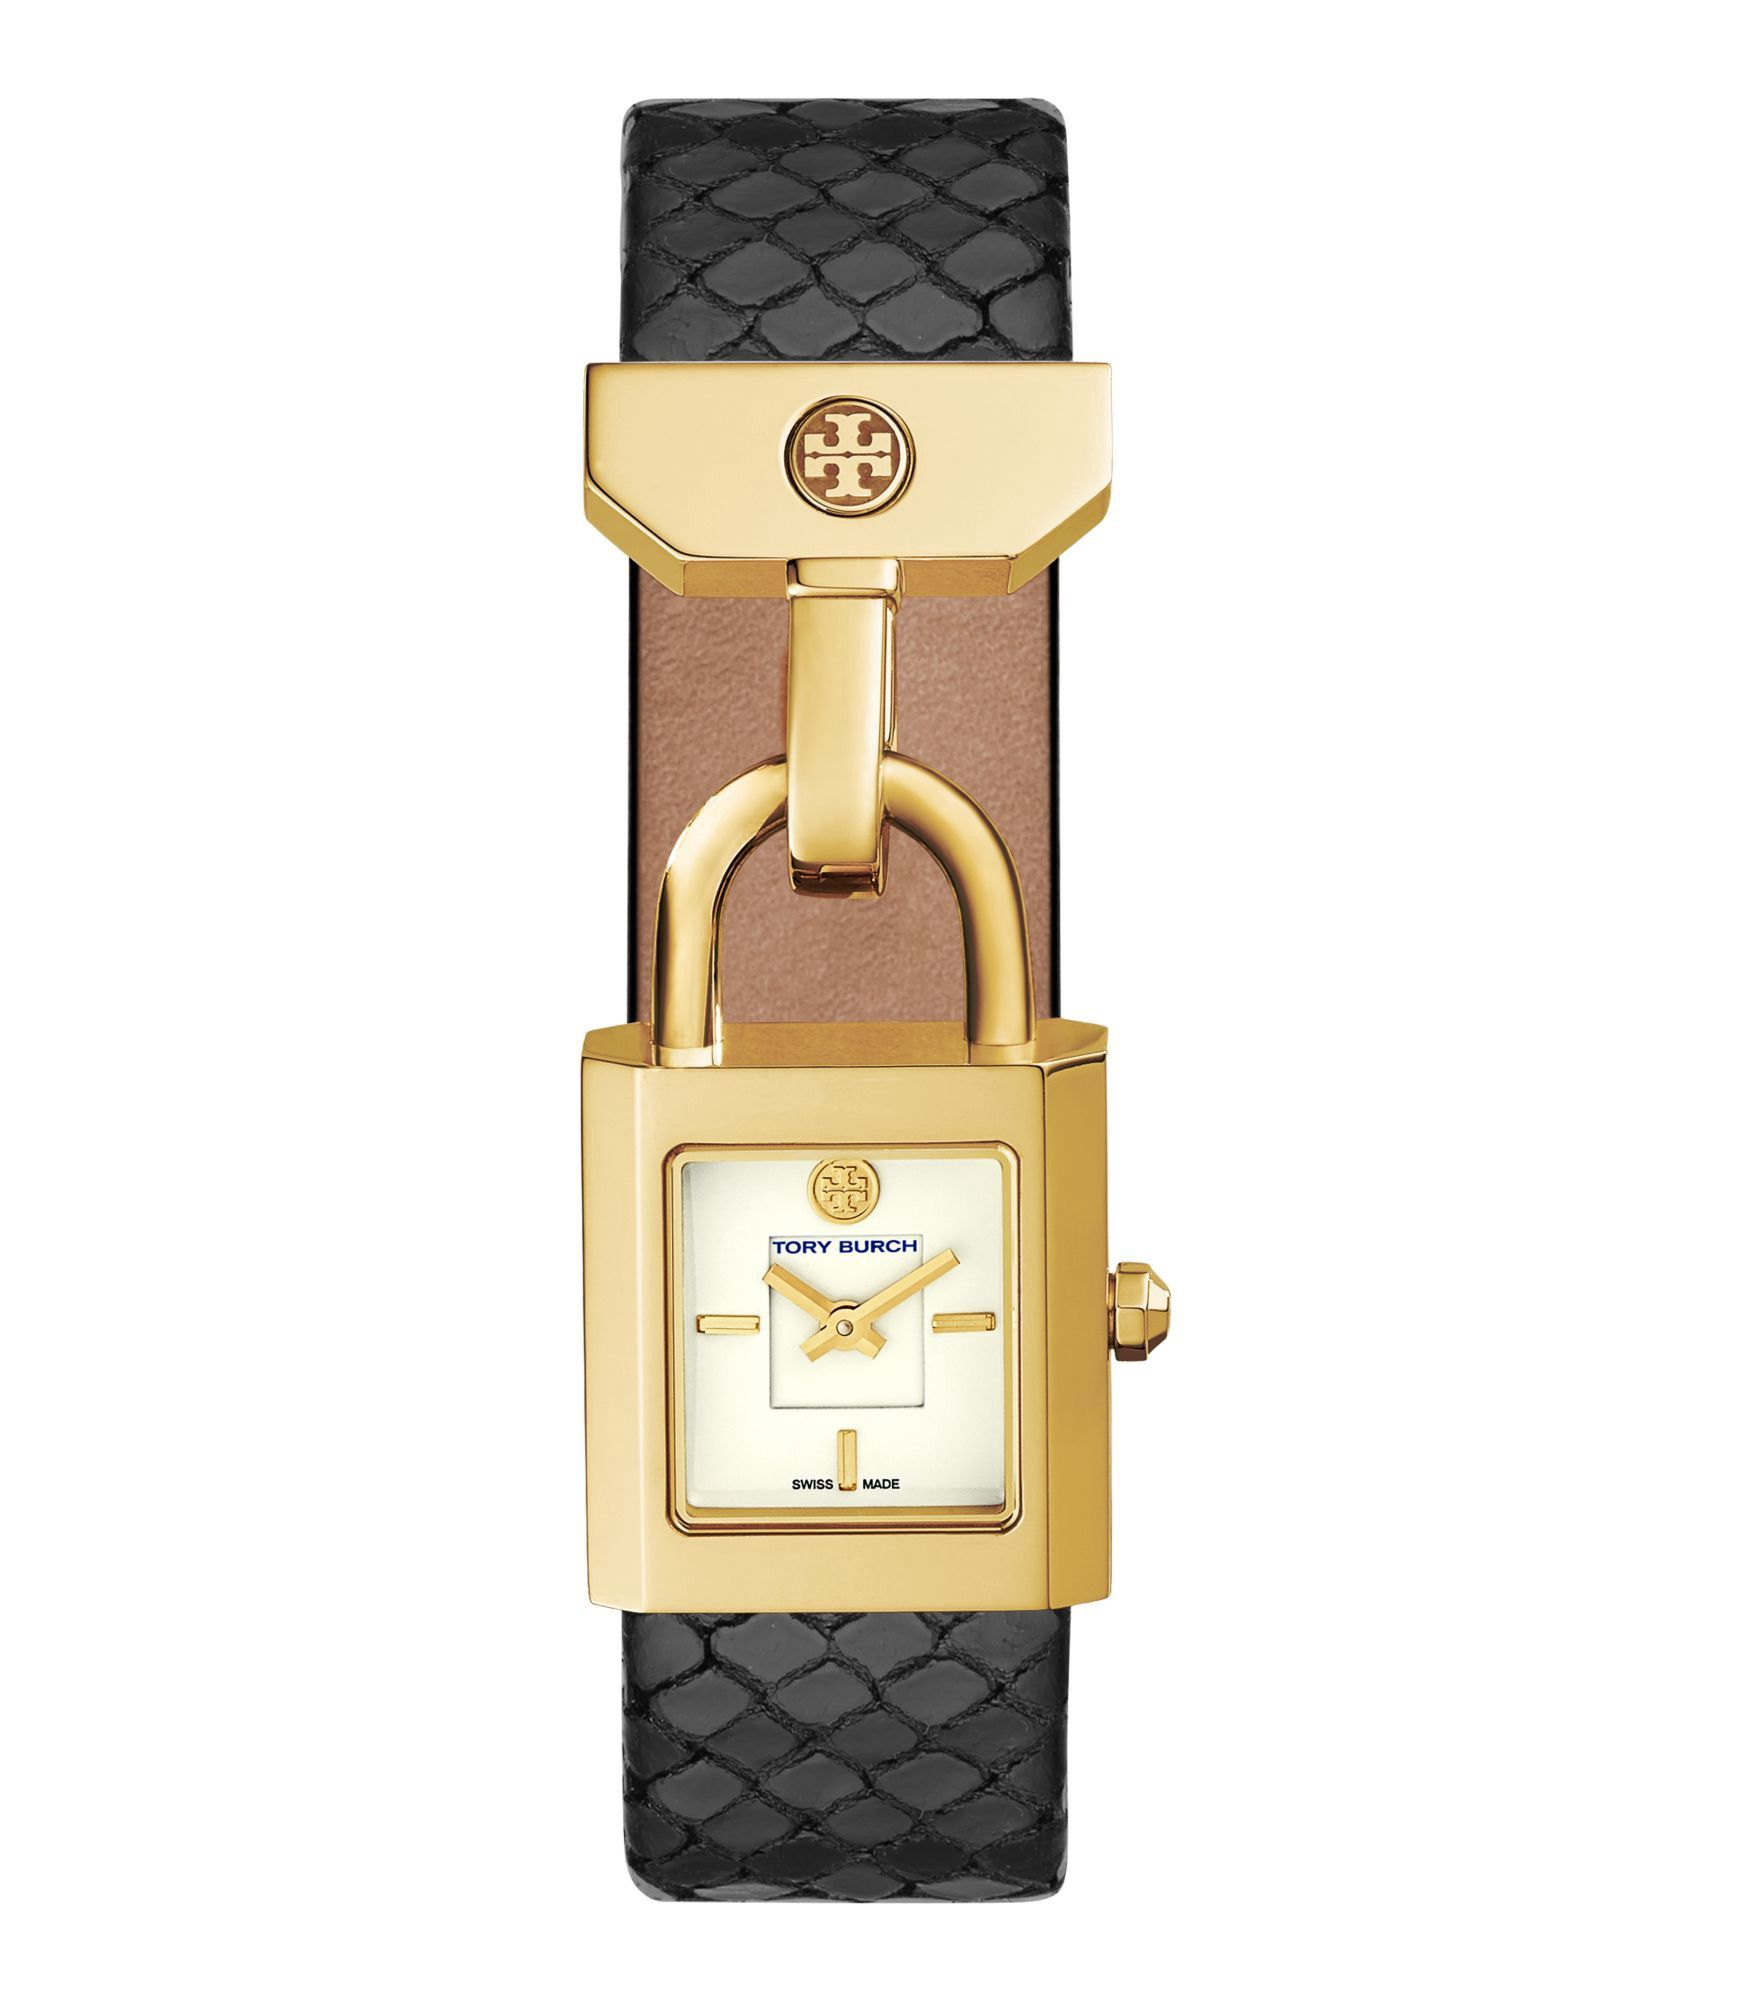 Tory Burch Tory Burch Surrey Leather Strap Watch, available at